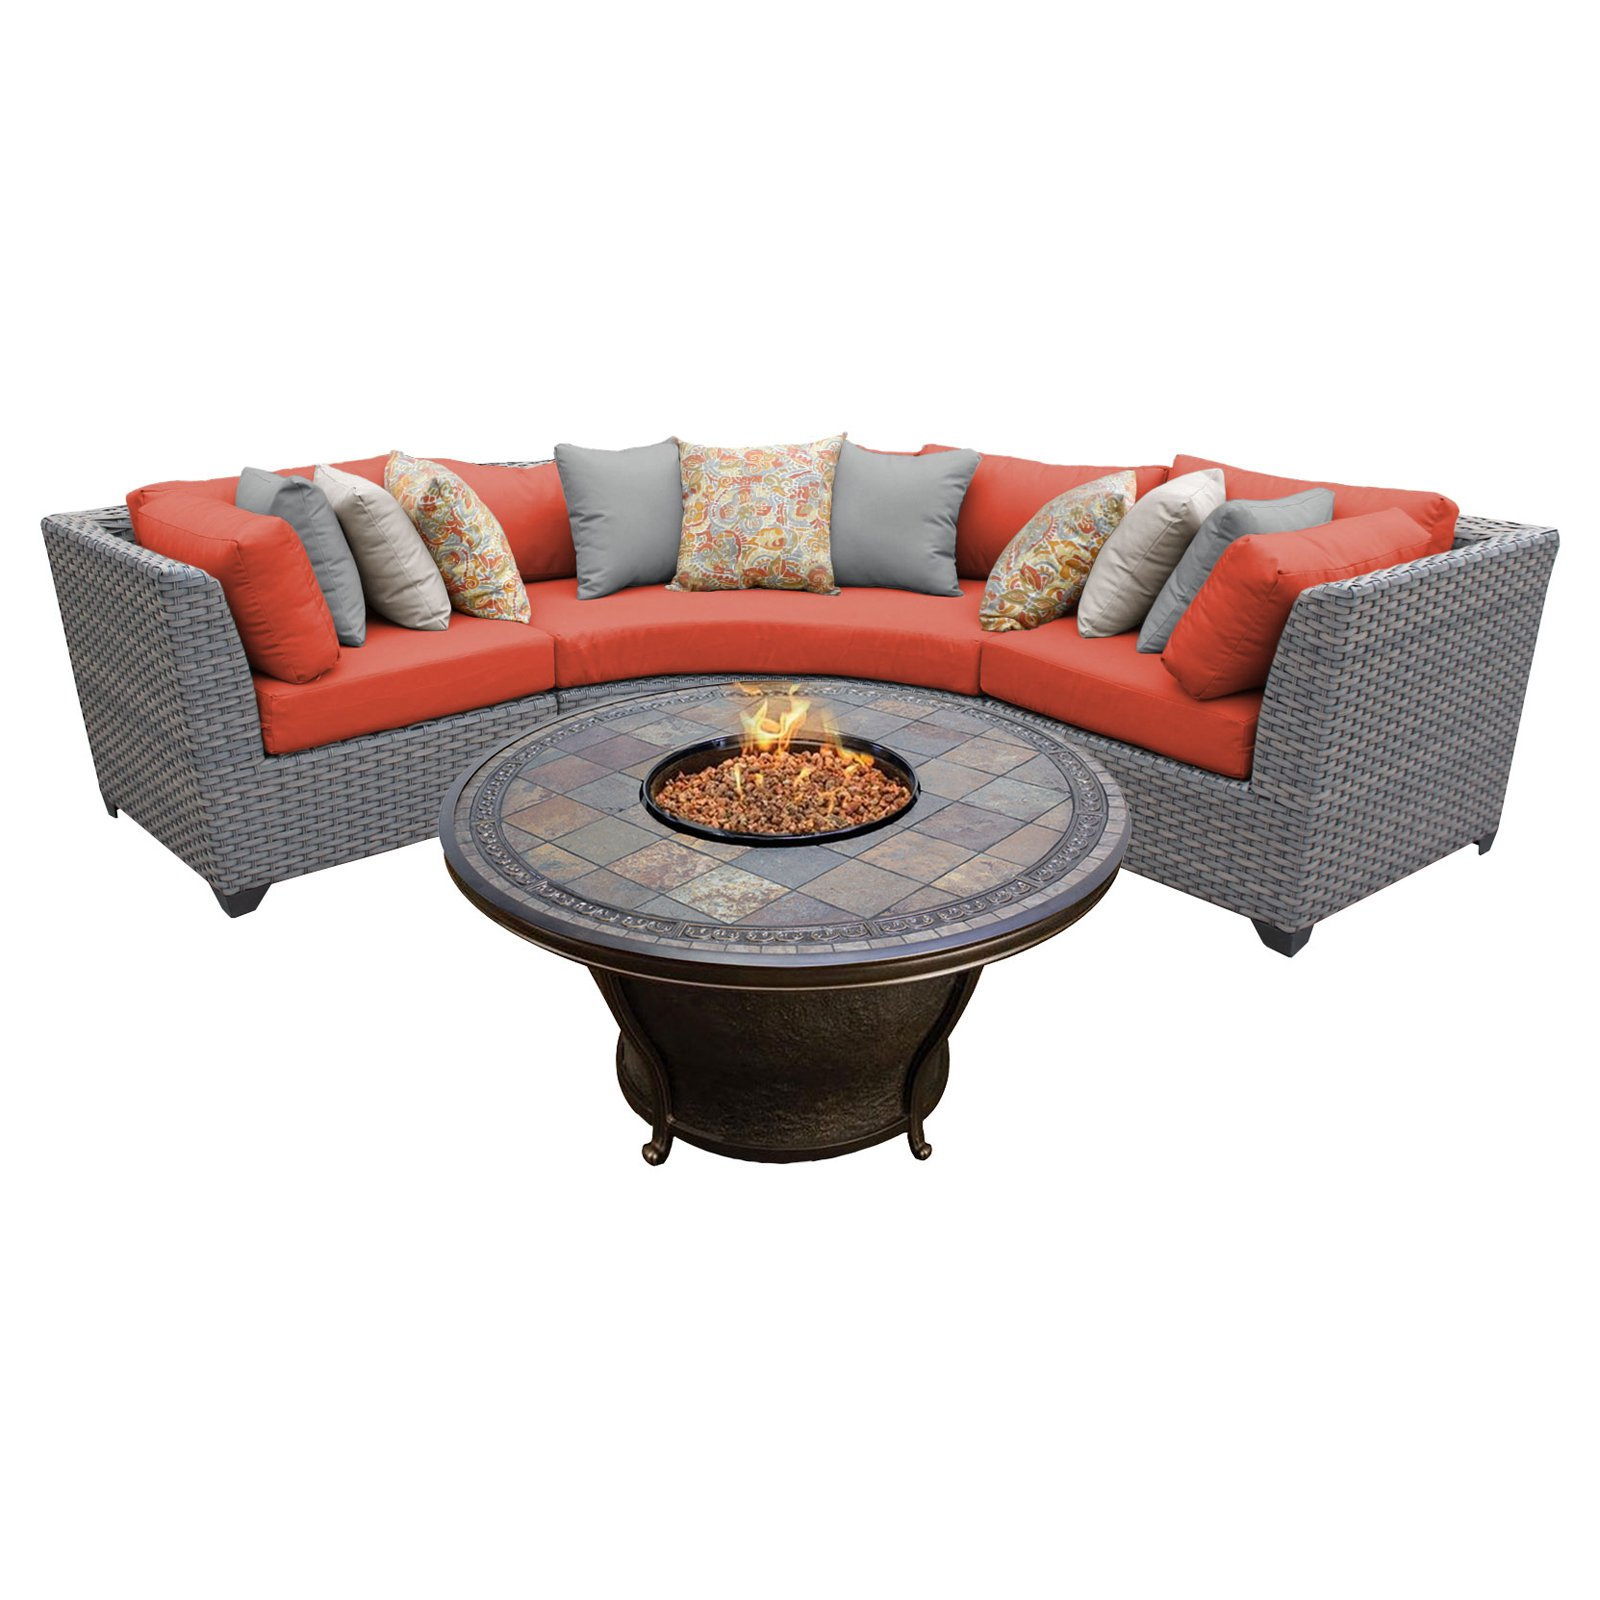 TK Classics Florence Wicker 4 Piece Patio Conversation Set with 2 Sets of Cushion Covers